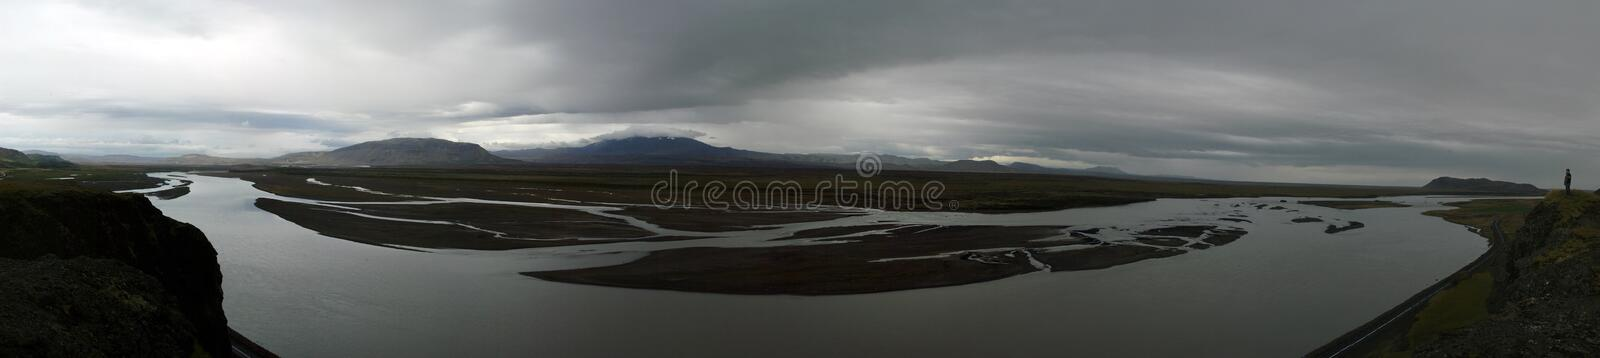 River in Central Iceland. Man overlooking the River in Central Iceland (180 degree panorama) Vatnajokul and Mt. Hekla in the clouds stock photography